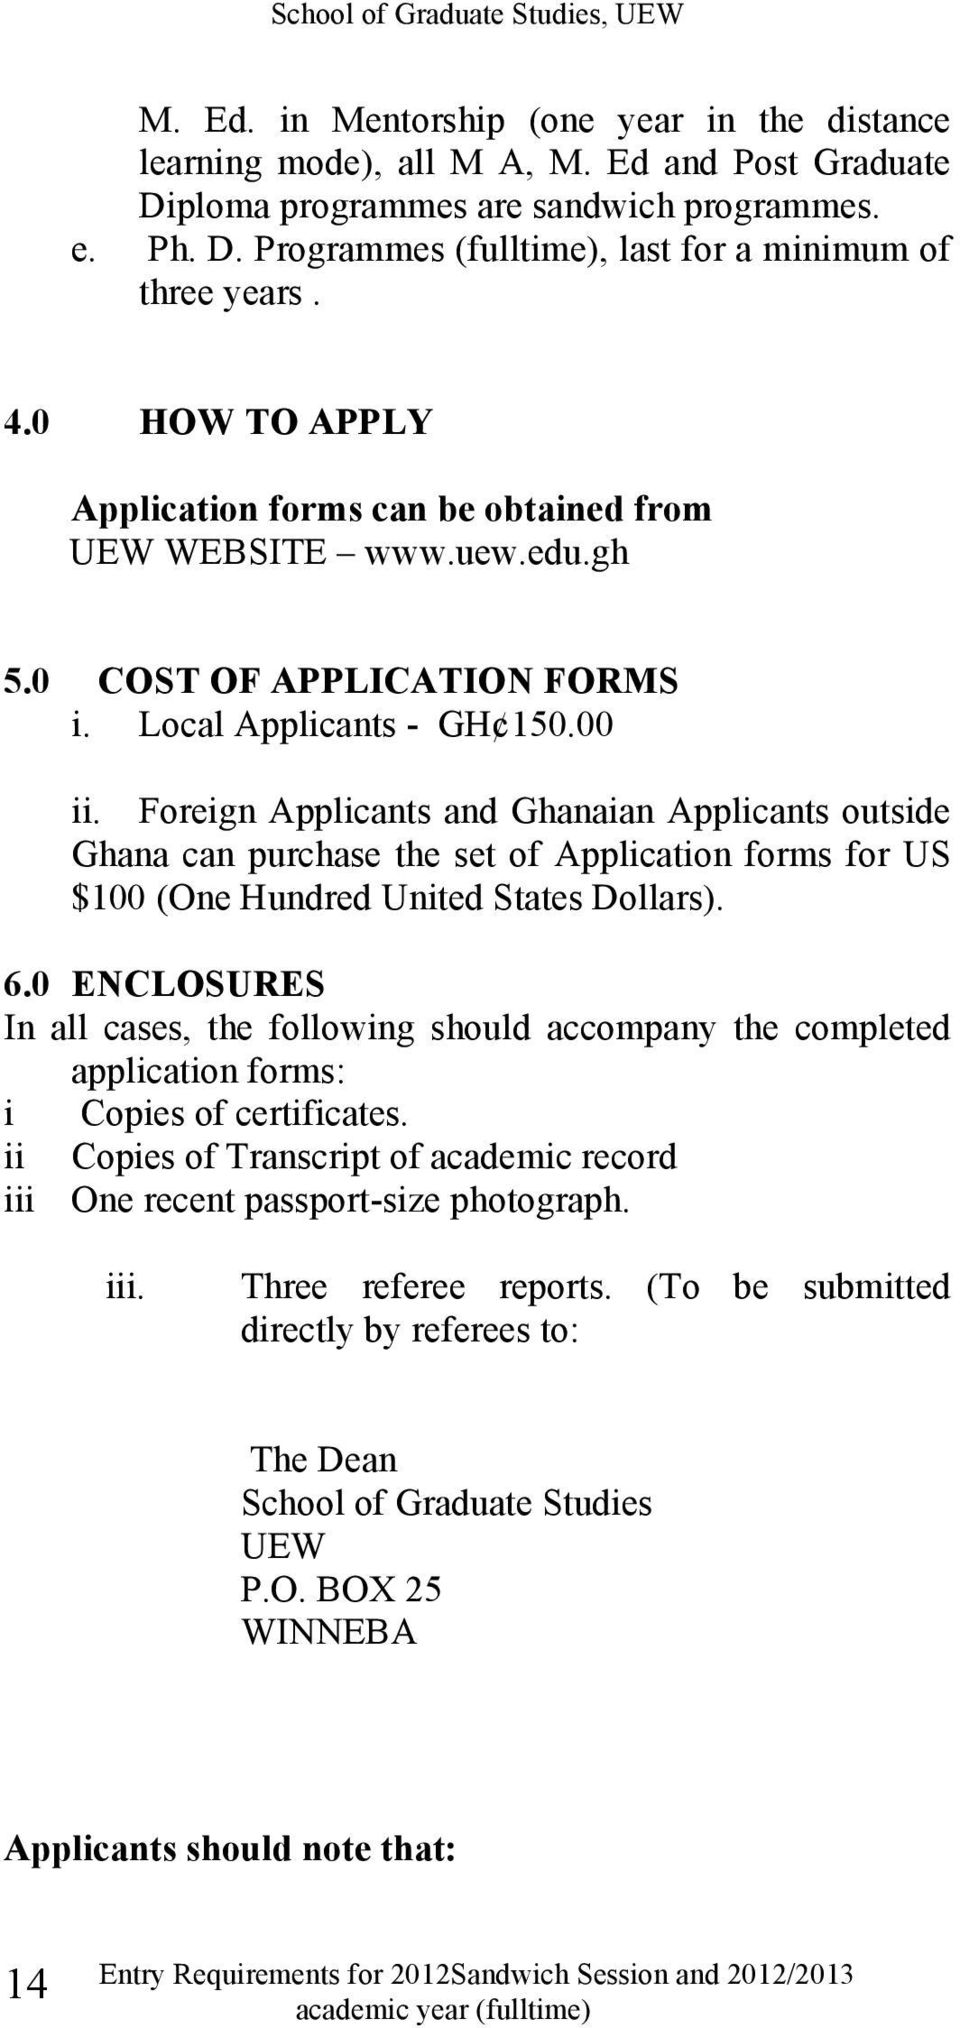 Foreign Applicants and Ghanaian Applicants outside Ghana can purchase the set of Application forms for US $100 (One Hundred United States Dollars). 6.